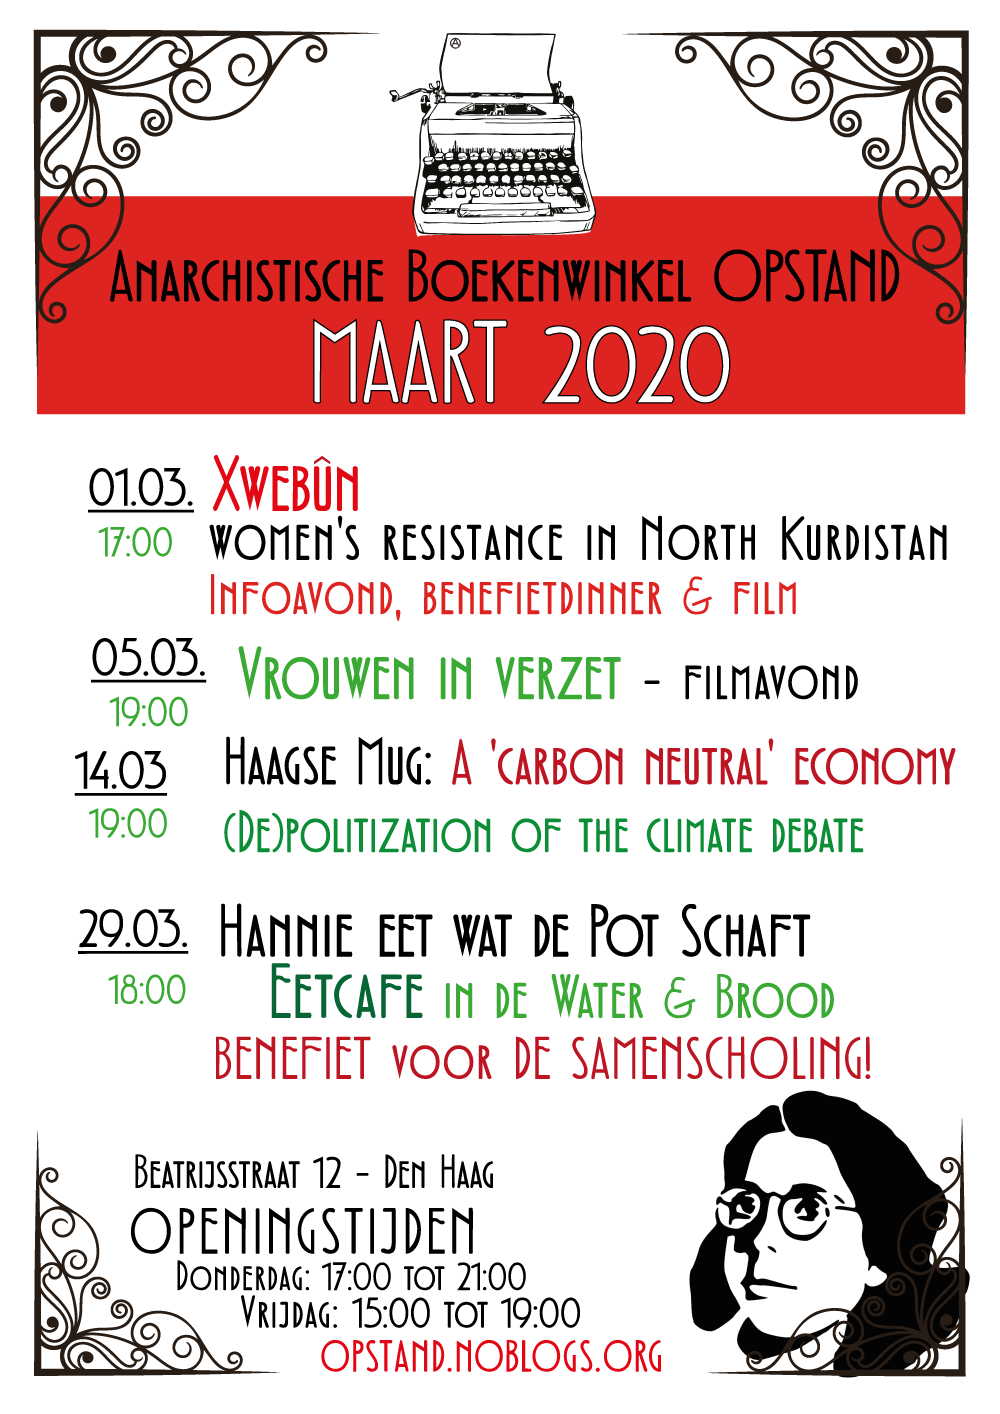 A flyer showing text with decorative black elements in all corners. a picture of Hannie Schaf's face in black and white is on the right bottom side. there is a typewritersymbol on top, followed by the words: 'anarchistische boekenwinkel opstand maart 2020'